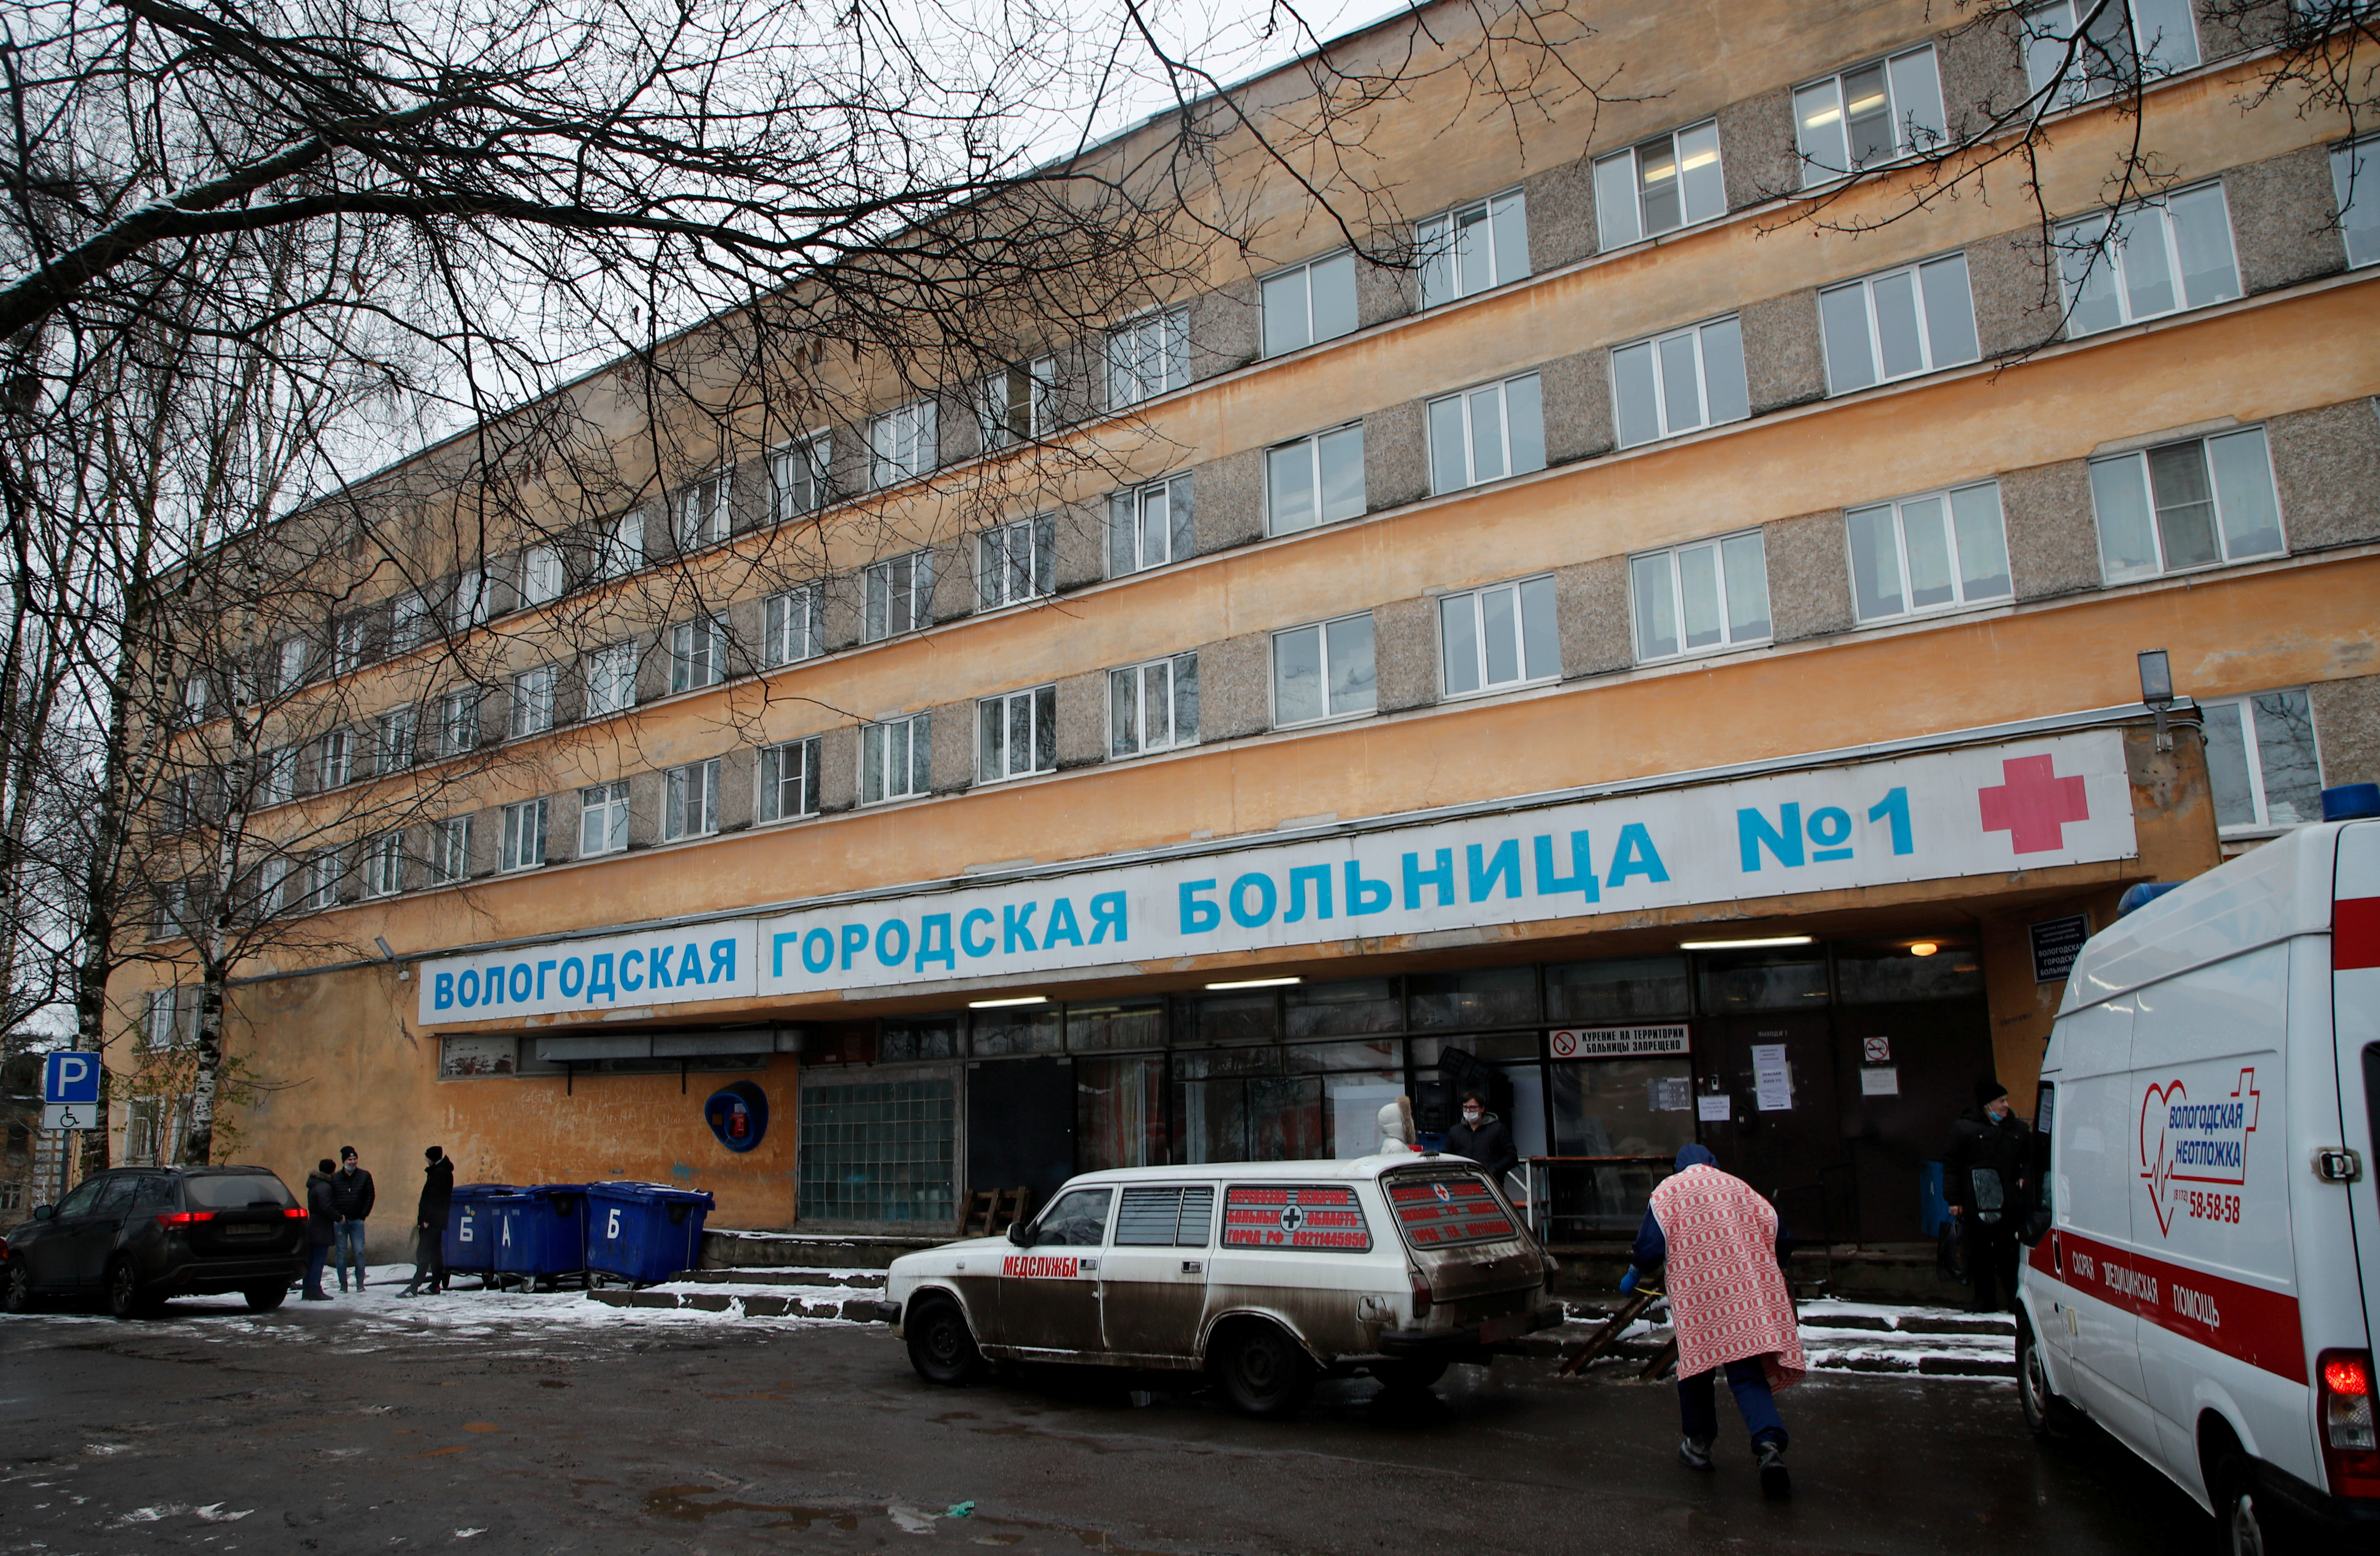 A view shows the Vologda City Hospital Number 1, where patients suffering from the coronavirus disease (COVID-19) are treated, in Vologda, Russia November 24, 2020. REUTERS/Anton Vaganov/File Photo